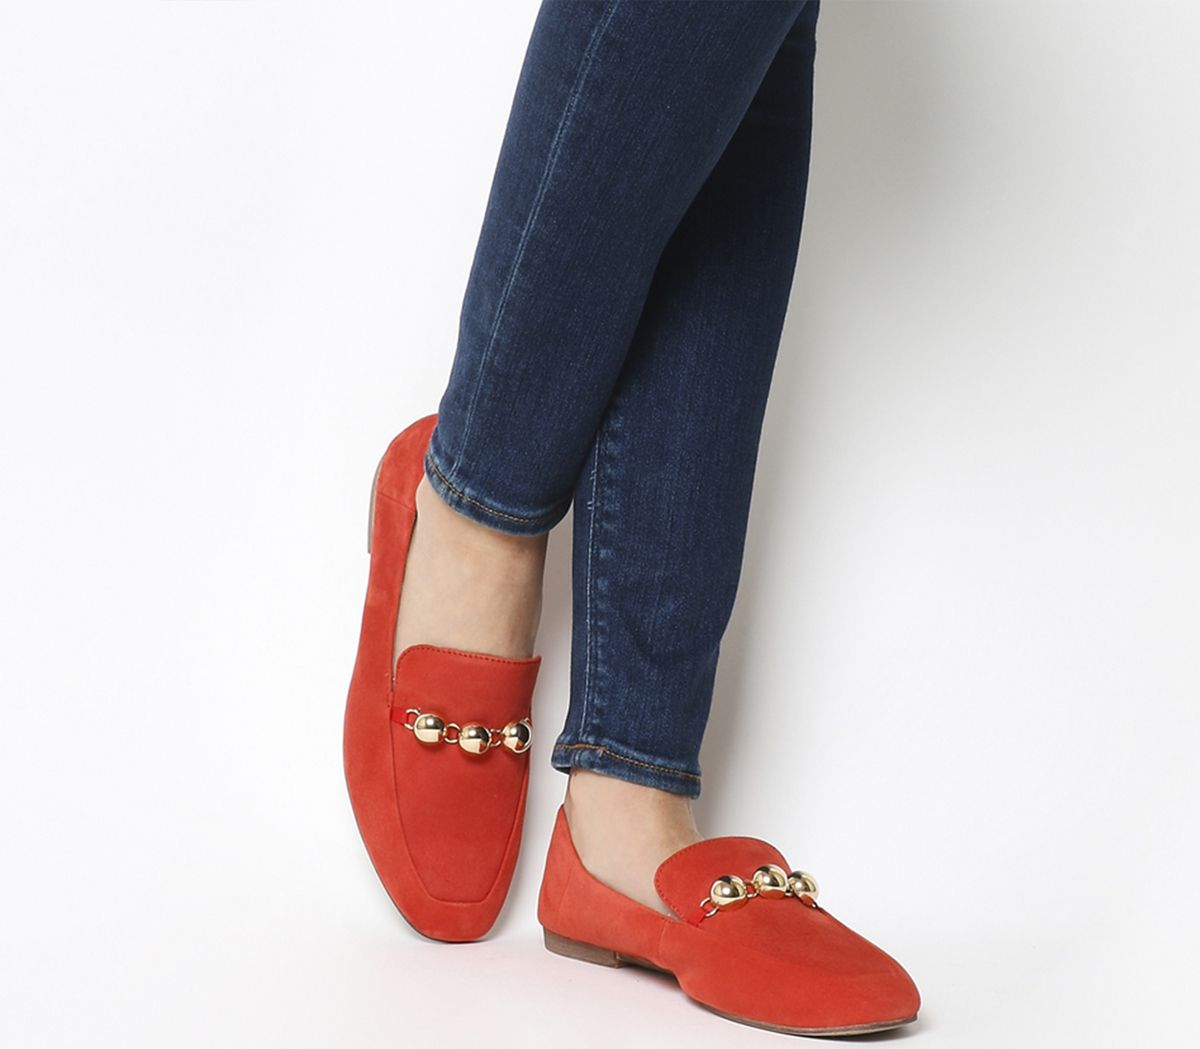 2028aace099 Vagabond Ayden Buckle Loafers Coral - Flats